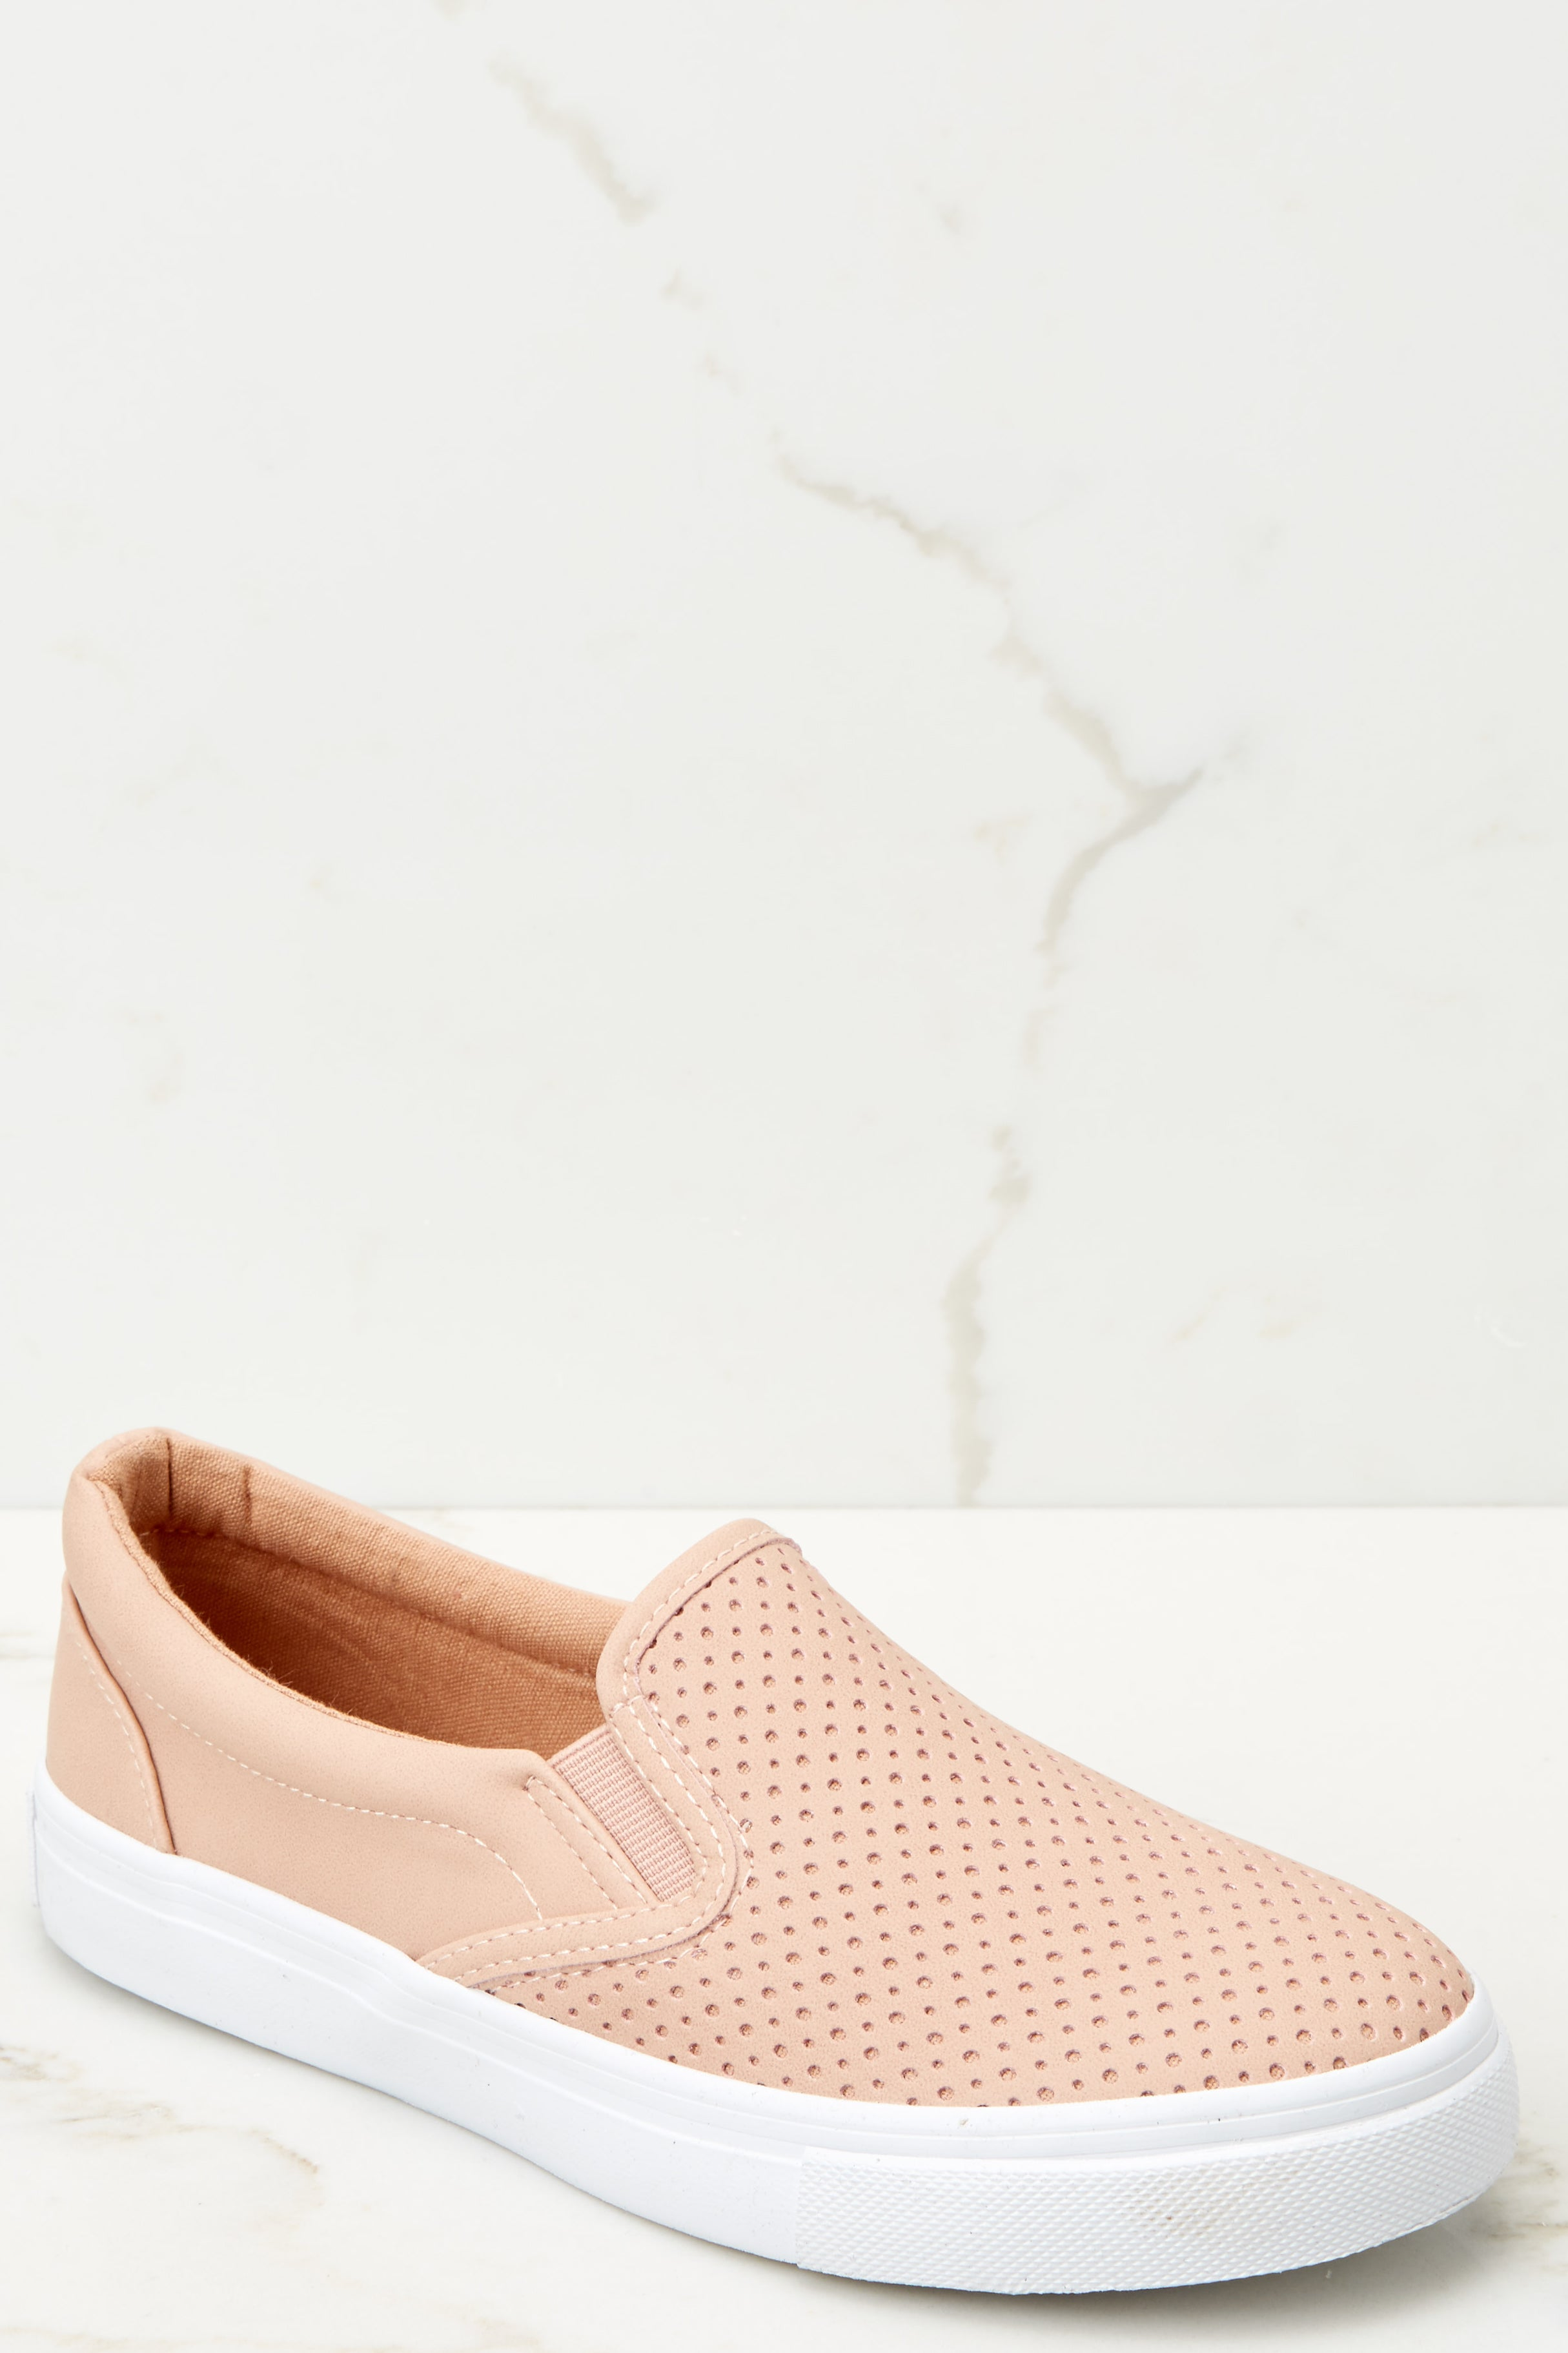 1 One Step Away Light Pink Slip On Sneakers at reddressboutique.com